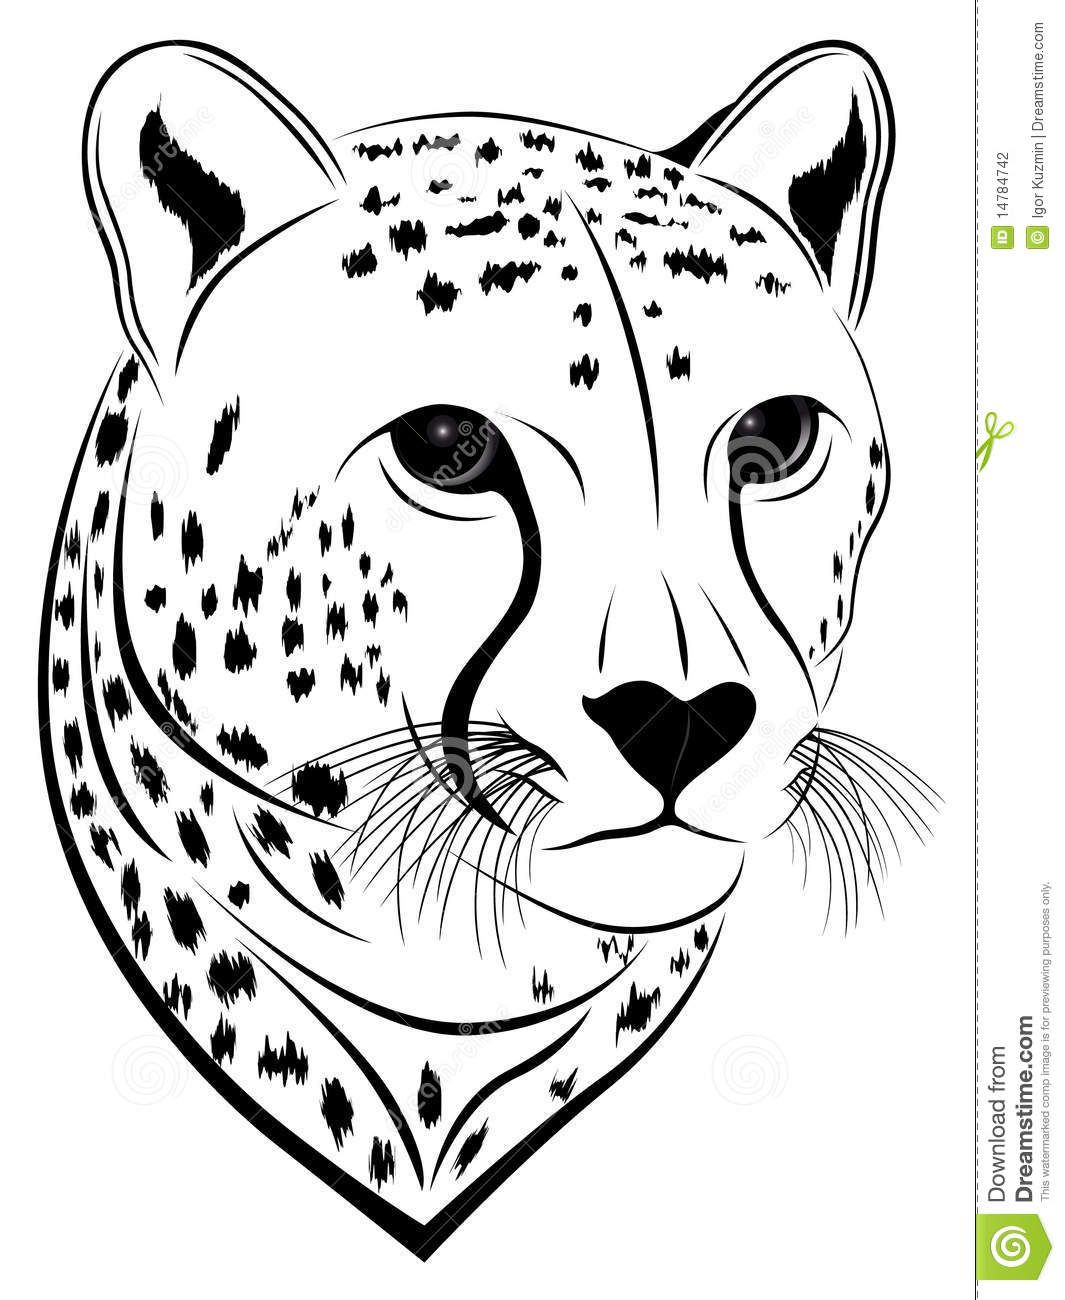 Illustration About Cheetah In The Form Of A Tattoo Illustration Of Tattoo Symbol Black 14784742 Cat Face Drawing Cheetah Face Cheetah Print Tattoos